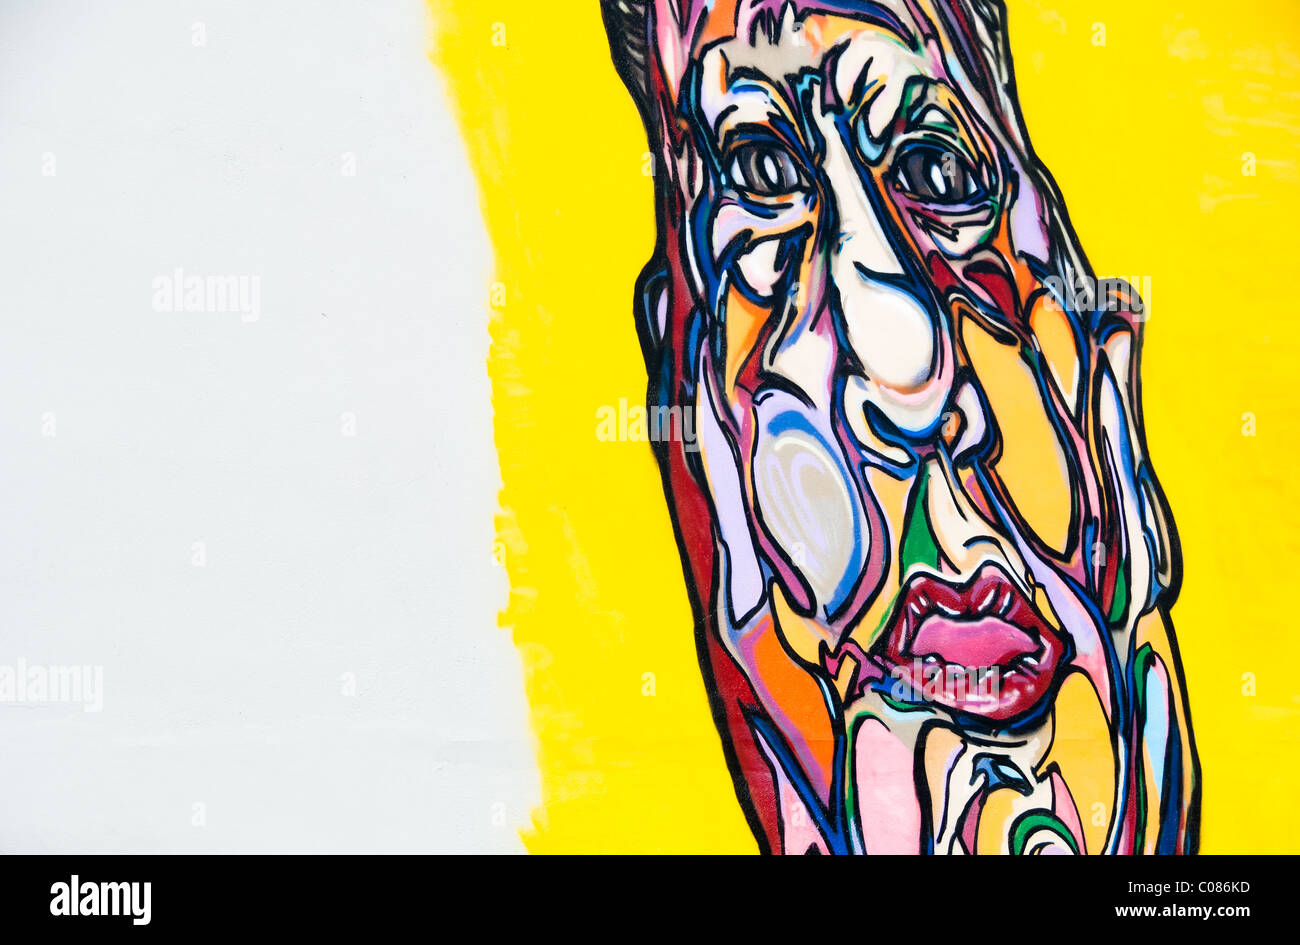 Miami Wynwood Wall Painting Stock Photos & Miami Wynwood Wall ...